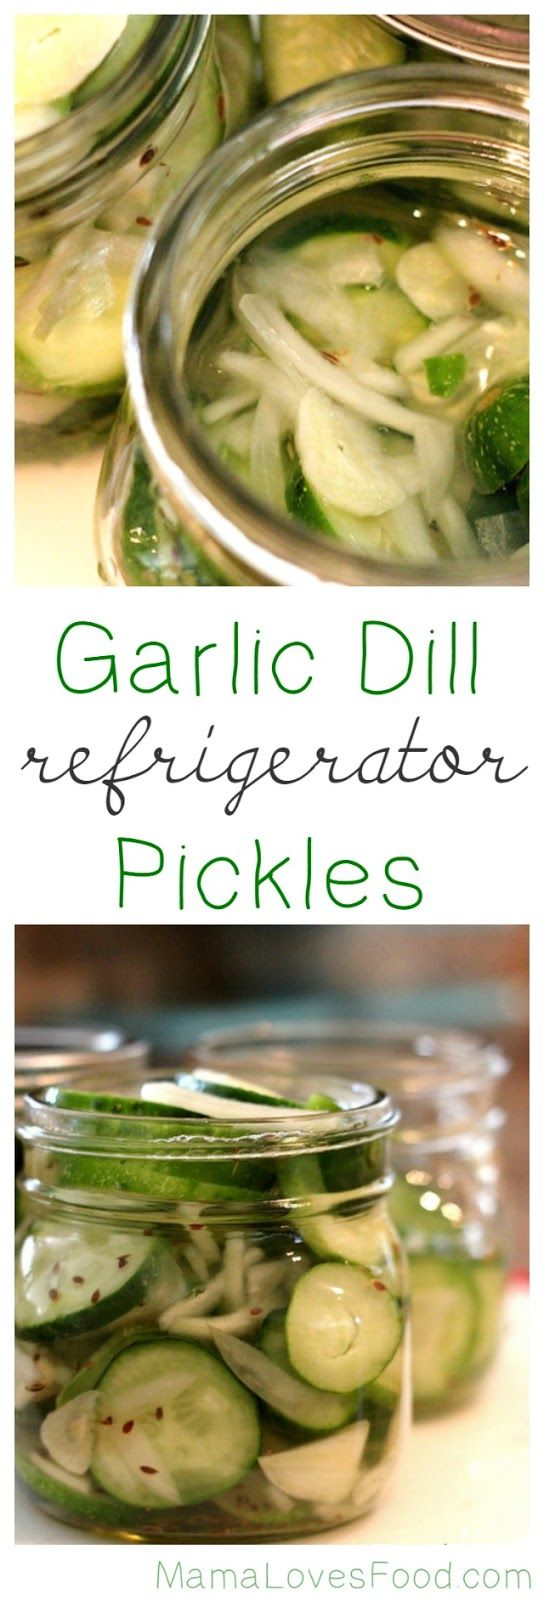 Garlic Dill Refrigerator Pickles.